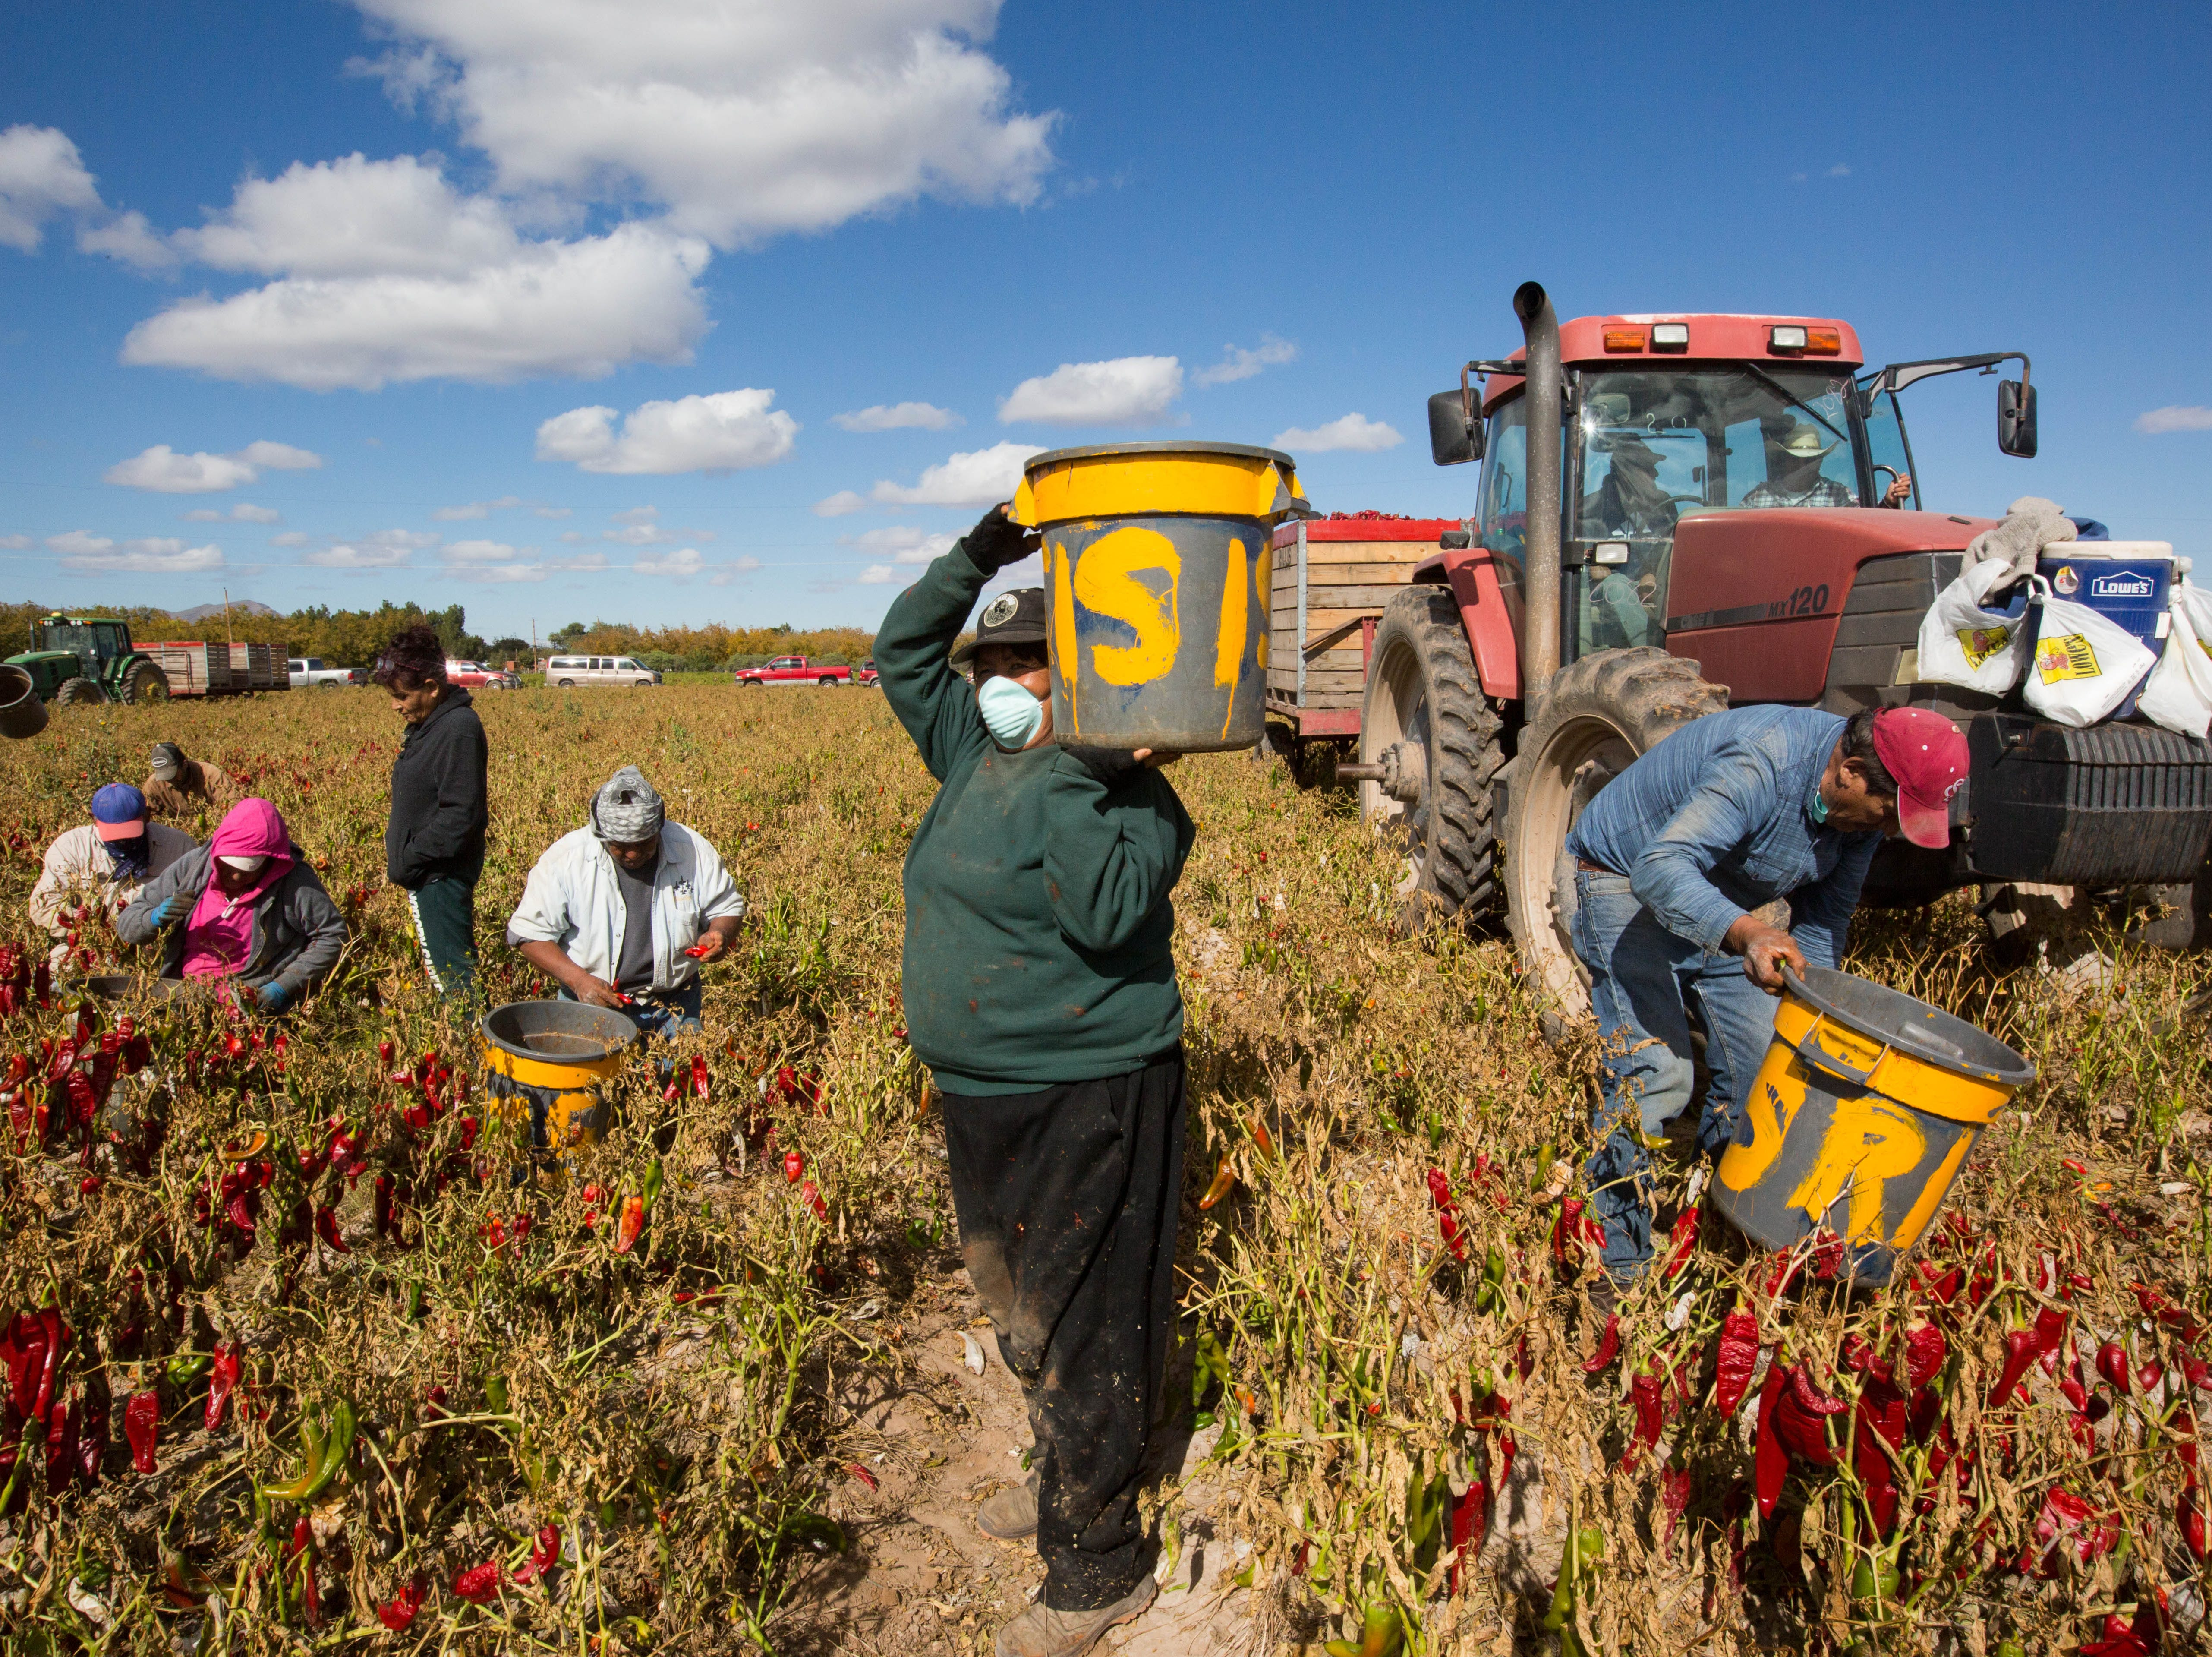 Farmworkers fill buckets with red chile in a field off of Doña Ana Road on Monday, Nov. 12, 2018. Harsh, cold weather was expected to prevent harvesting in the same field on Tuesday.